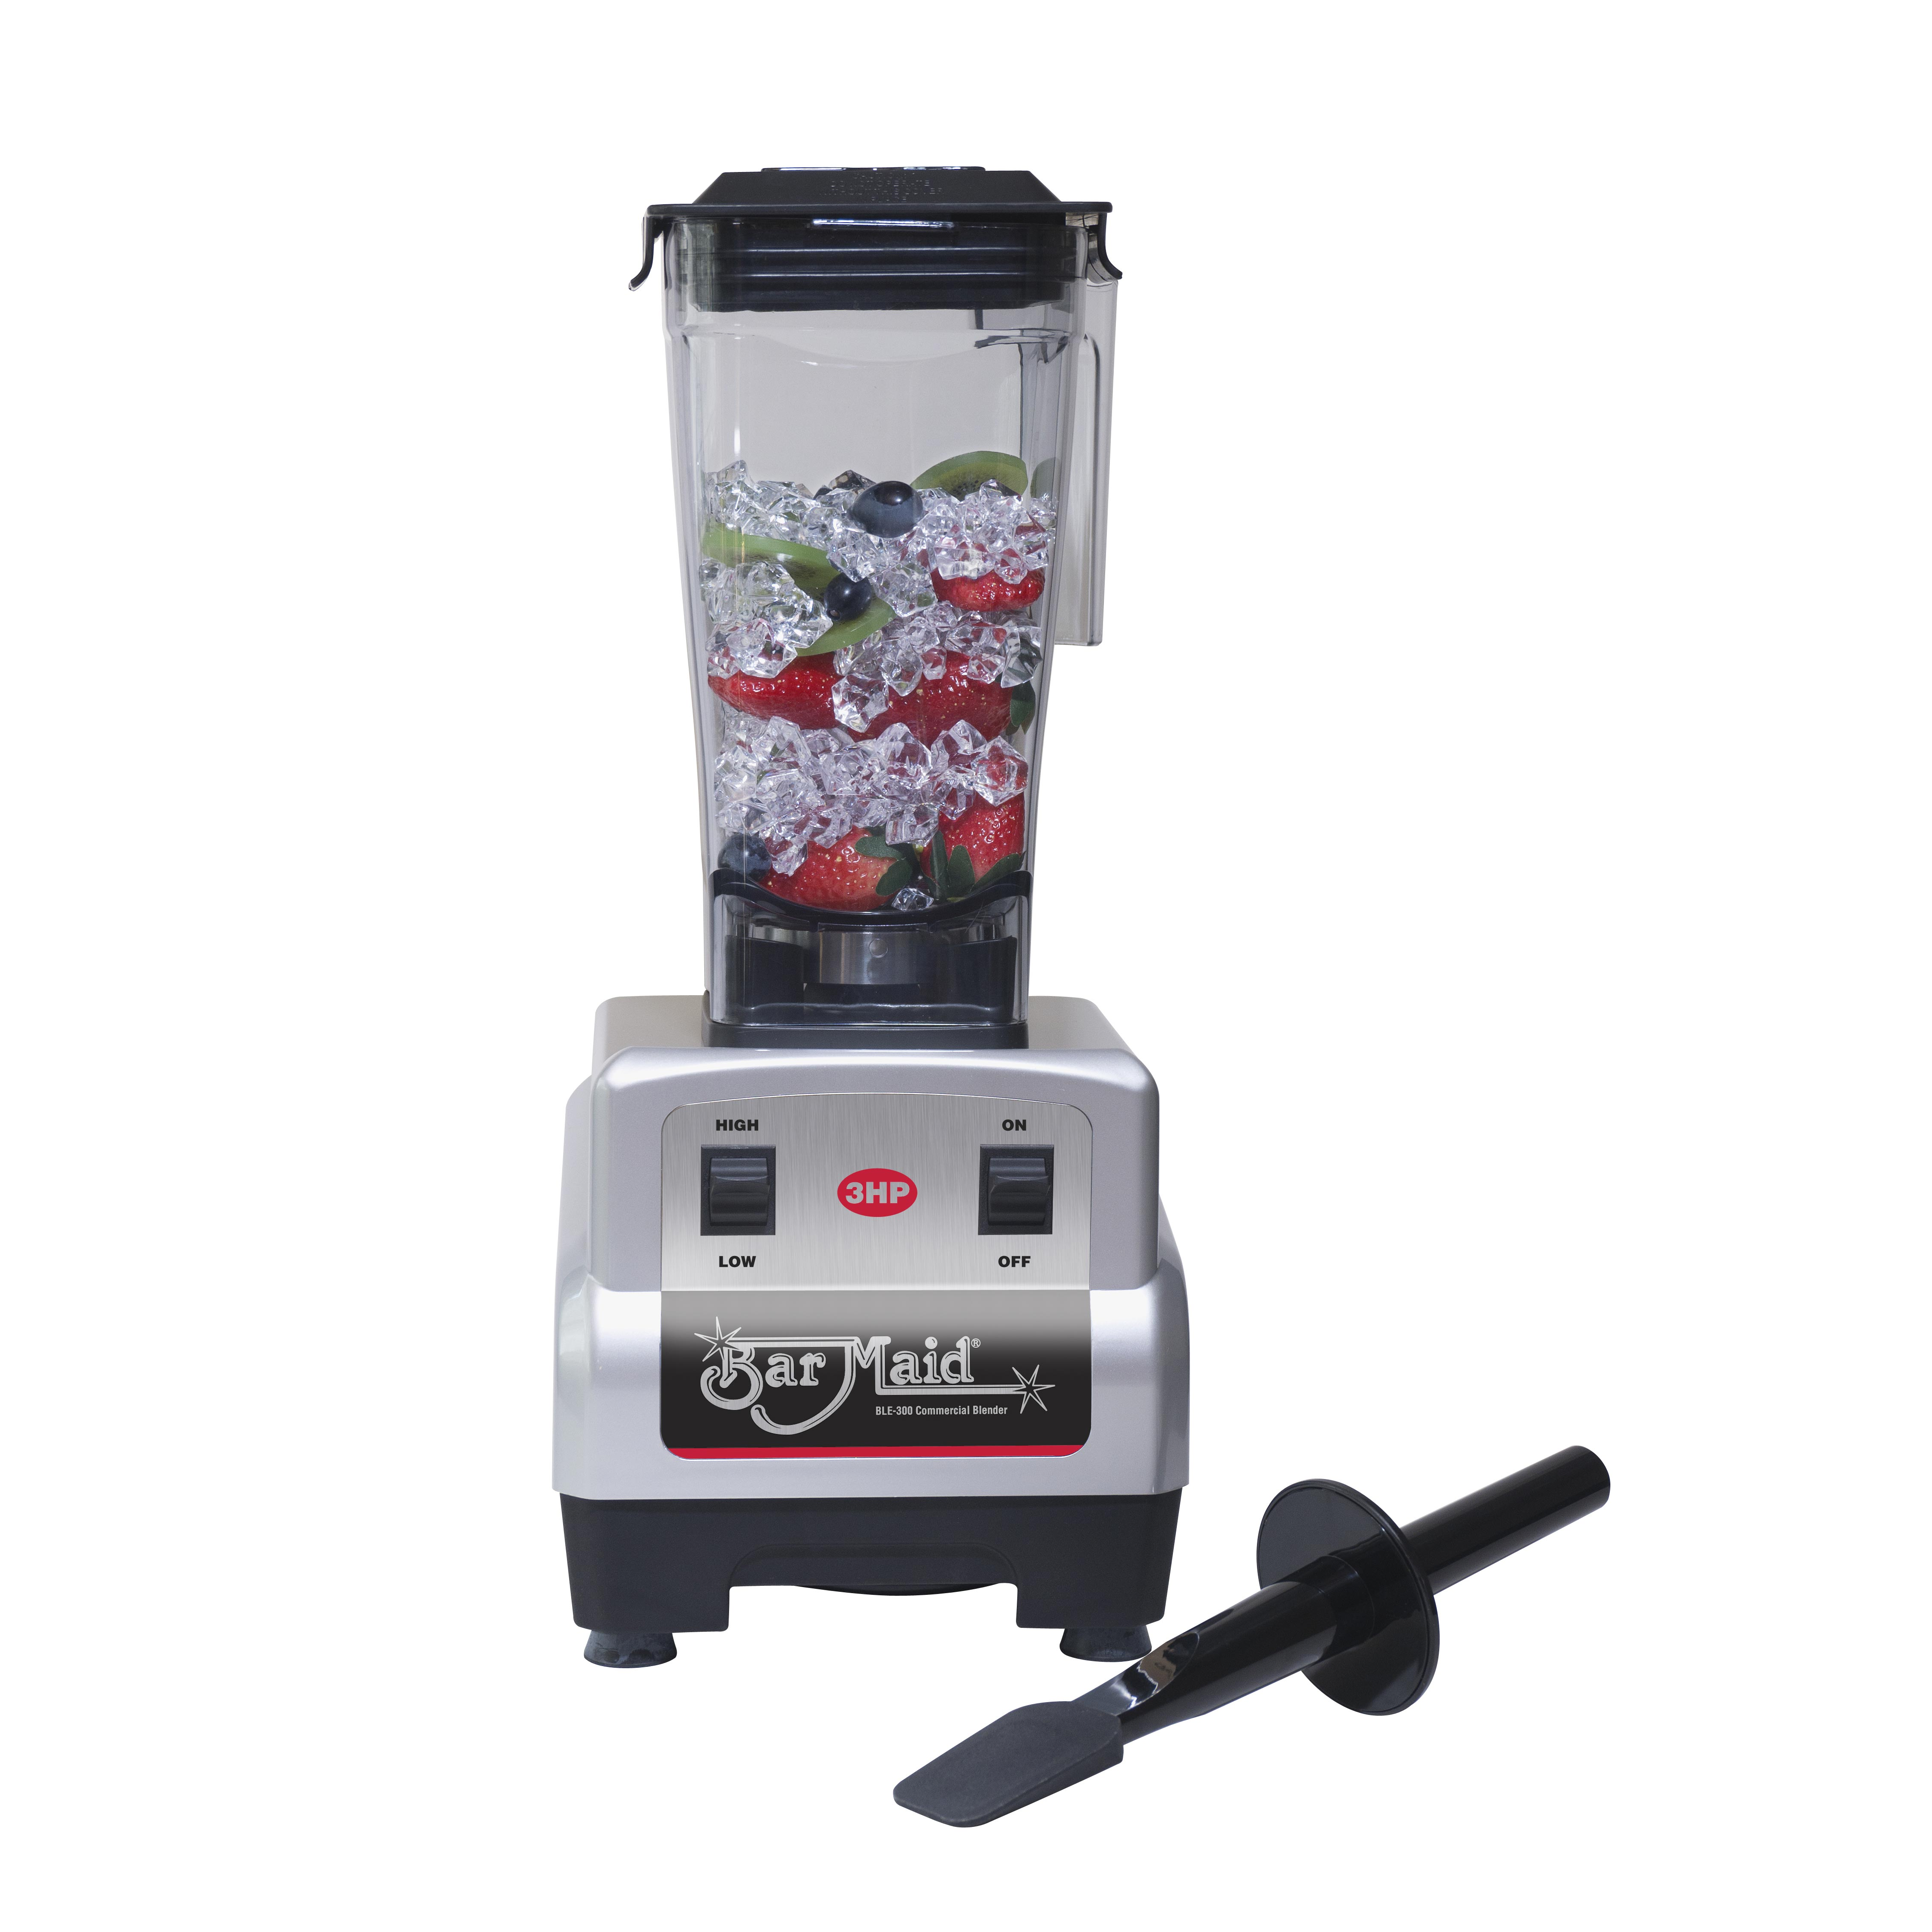 2050-92 Bar Maid/Glass Pro BLE-300 blender, bar